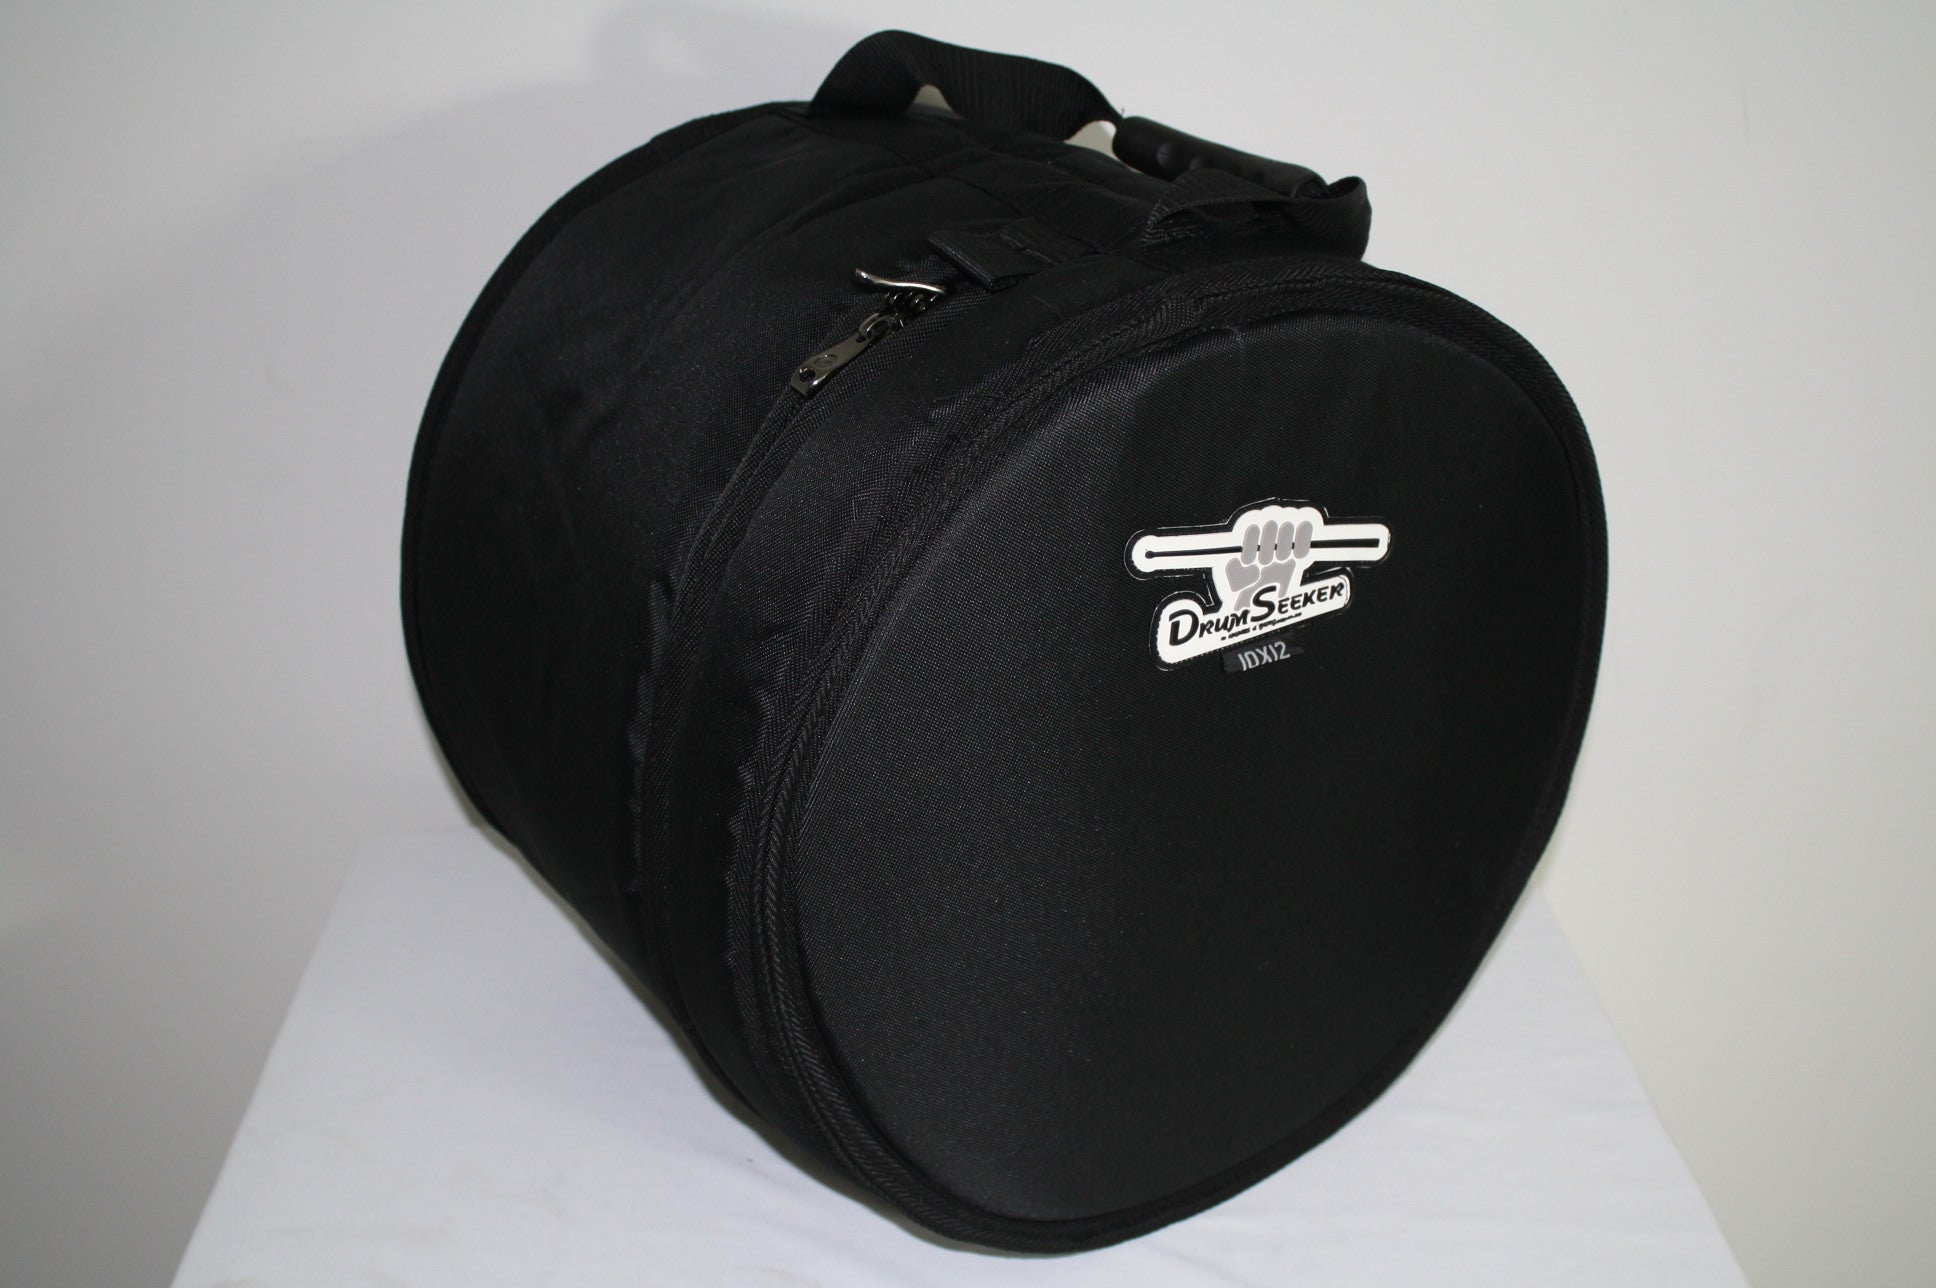 H&B  Drum Seeker 16 x 16 Inches Floor Tom Drum Bag